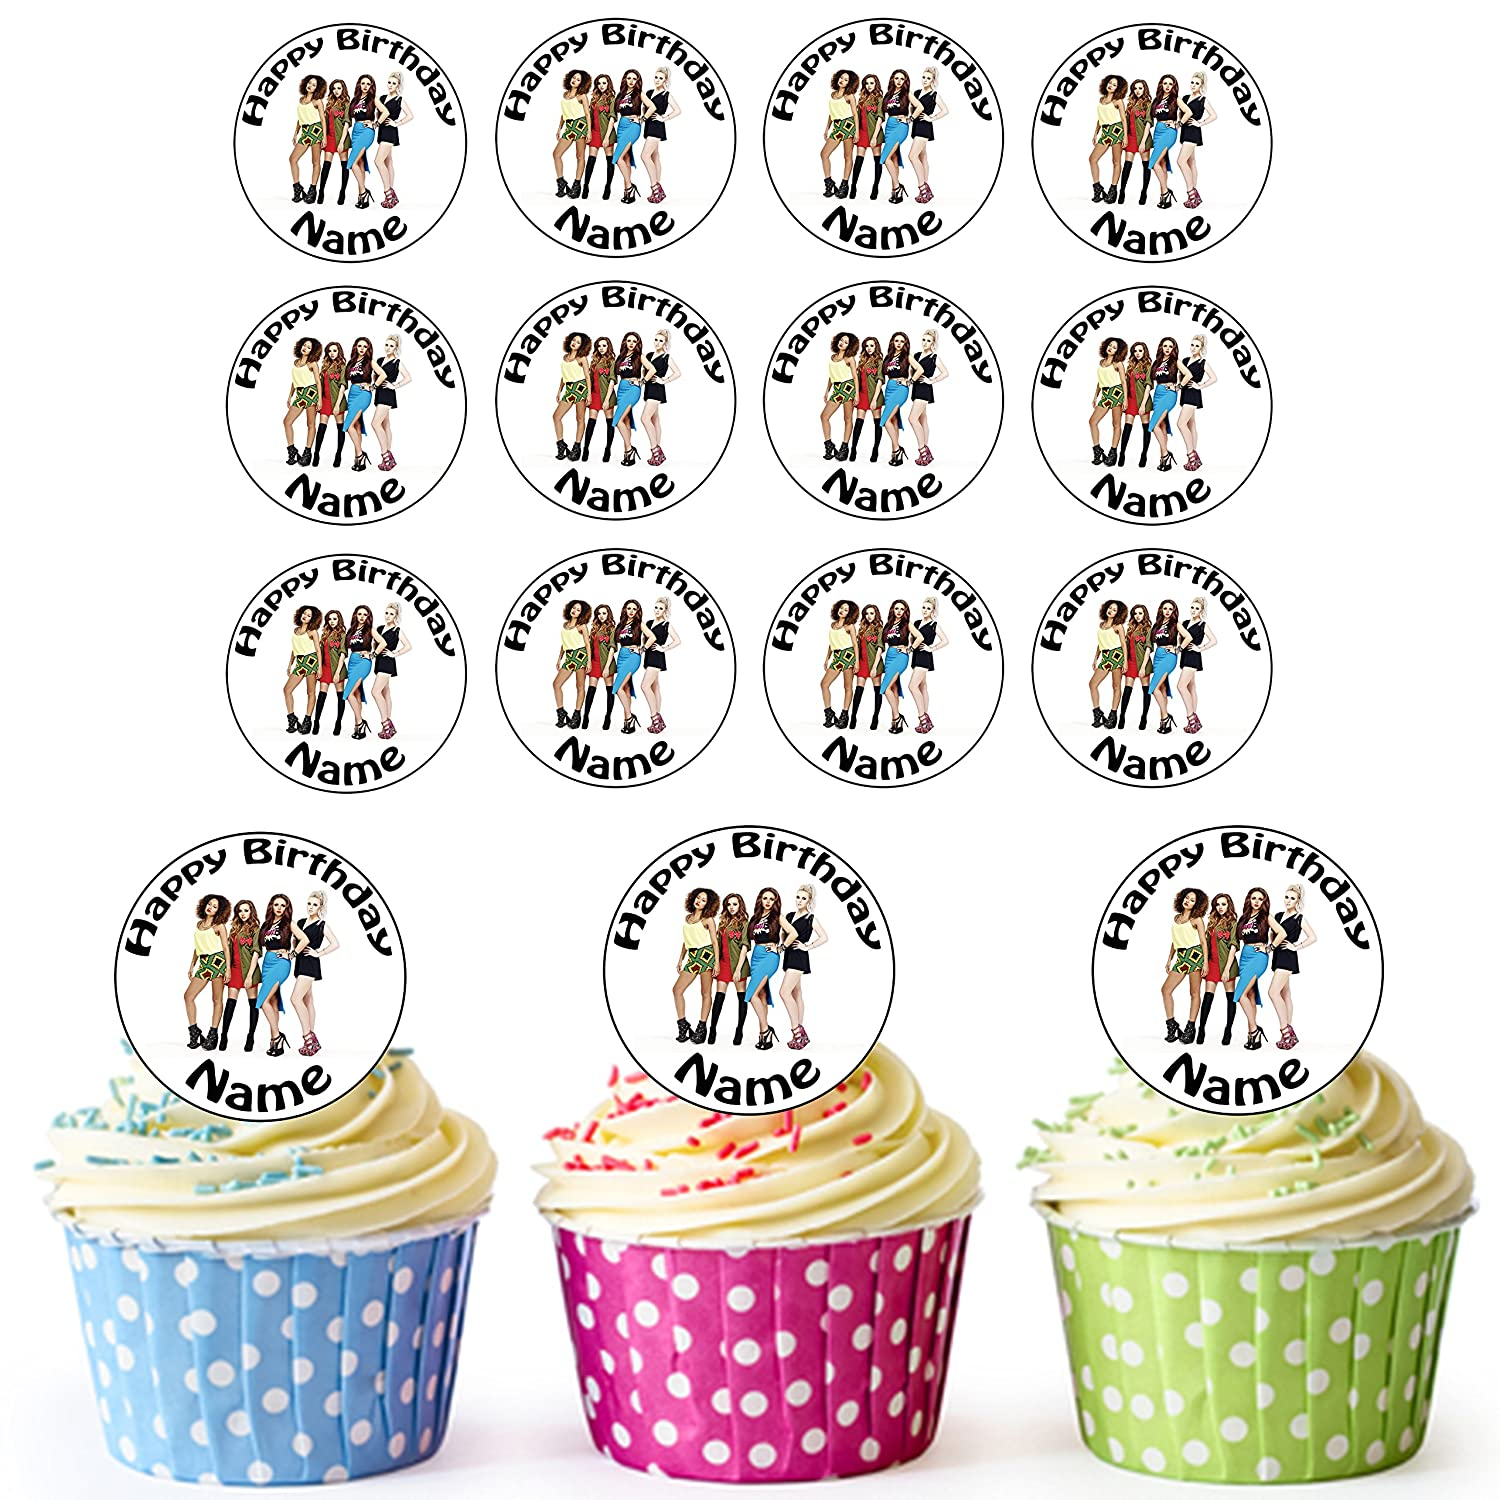 Little Mix 24 Personalised Edible Cupcake Toppers/Birthday Cake Decorations - Easy Precut Circles